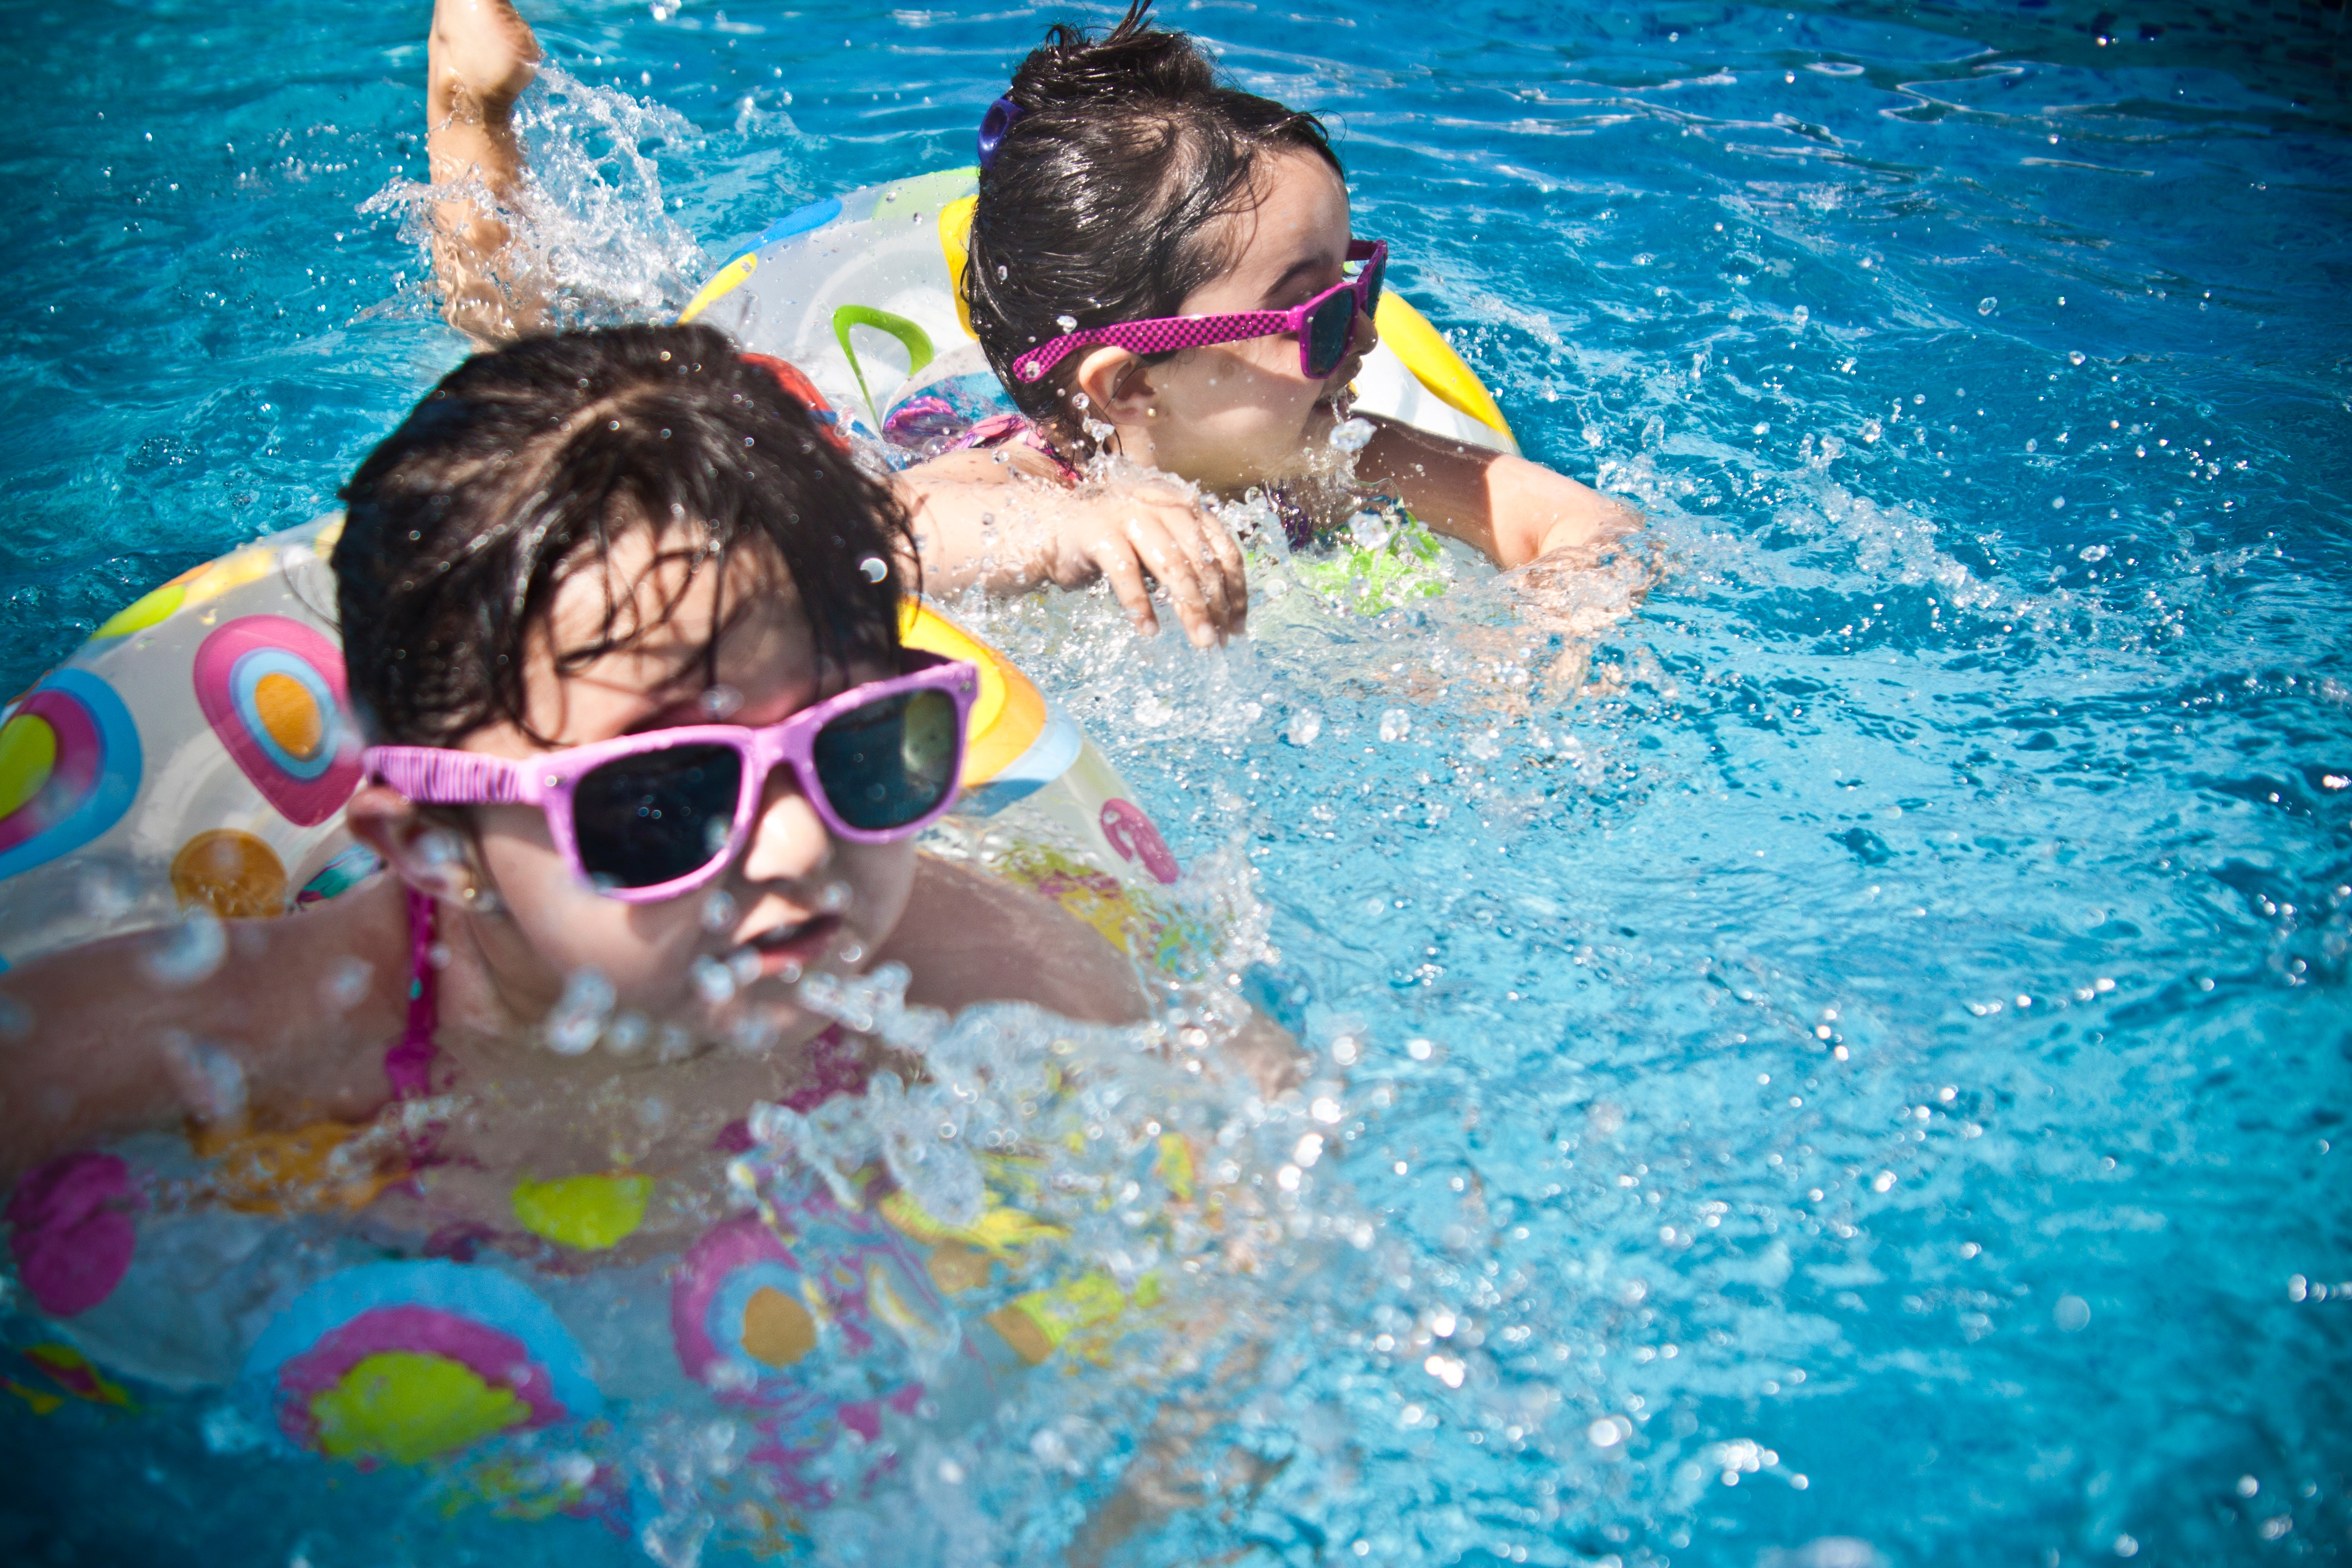 2 Girl's Swimming during Daytime, Activity, Sunglasses, Ring, Rubber, HQ Photo